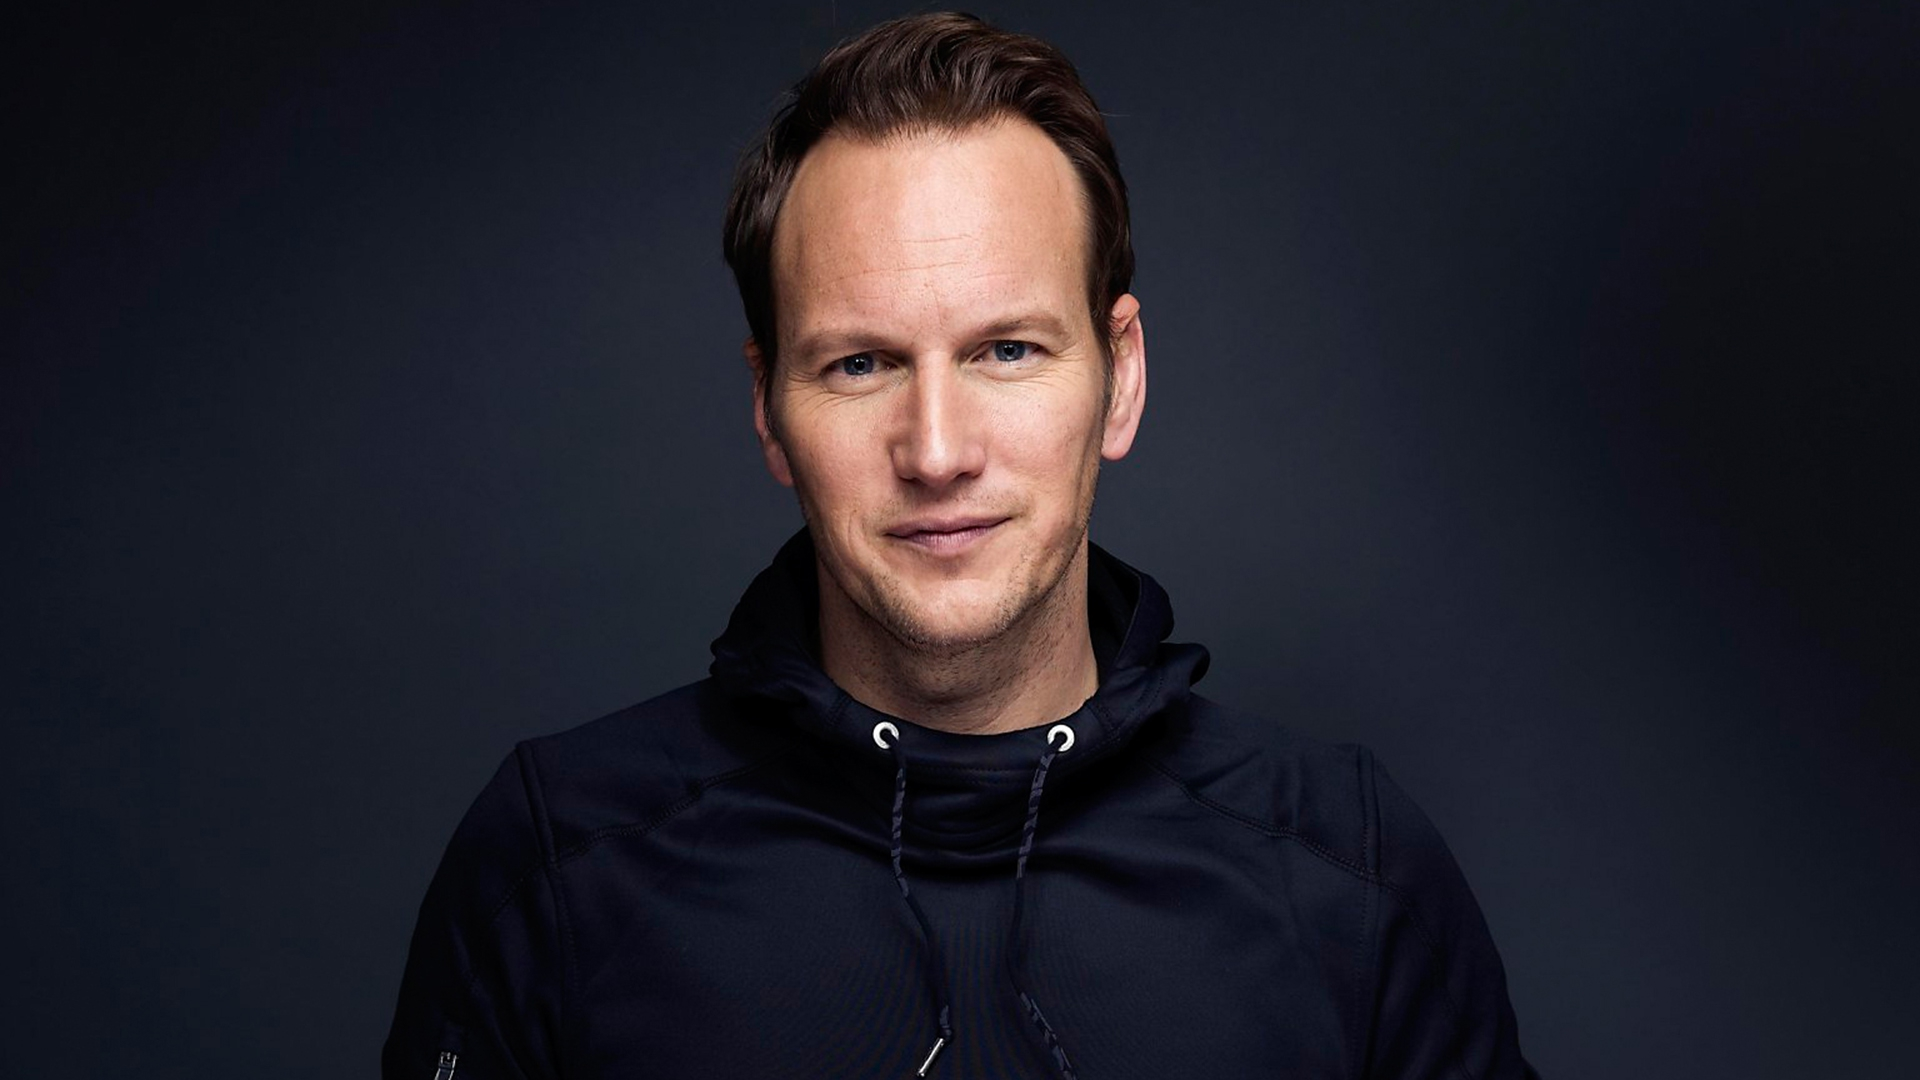 Anime Hd Wallpapers 1080p Patrick Wilson Wallpapers Hd Pictures Images High Quality